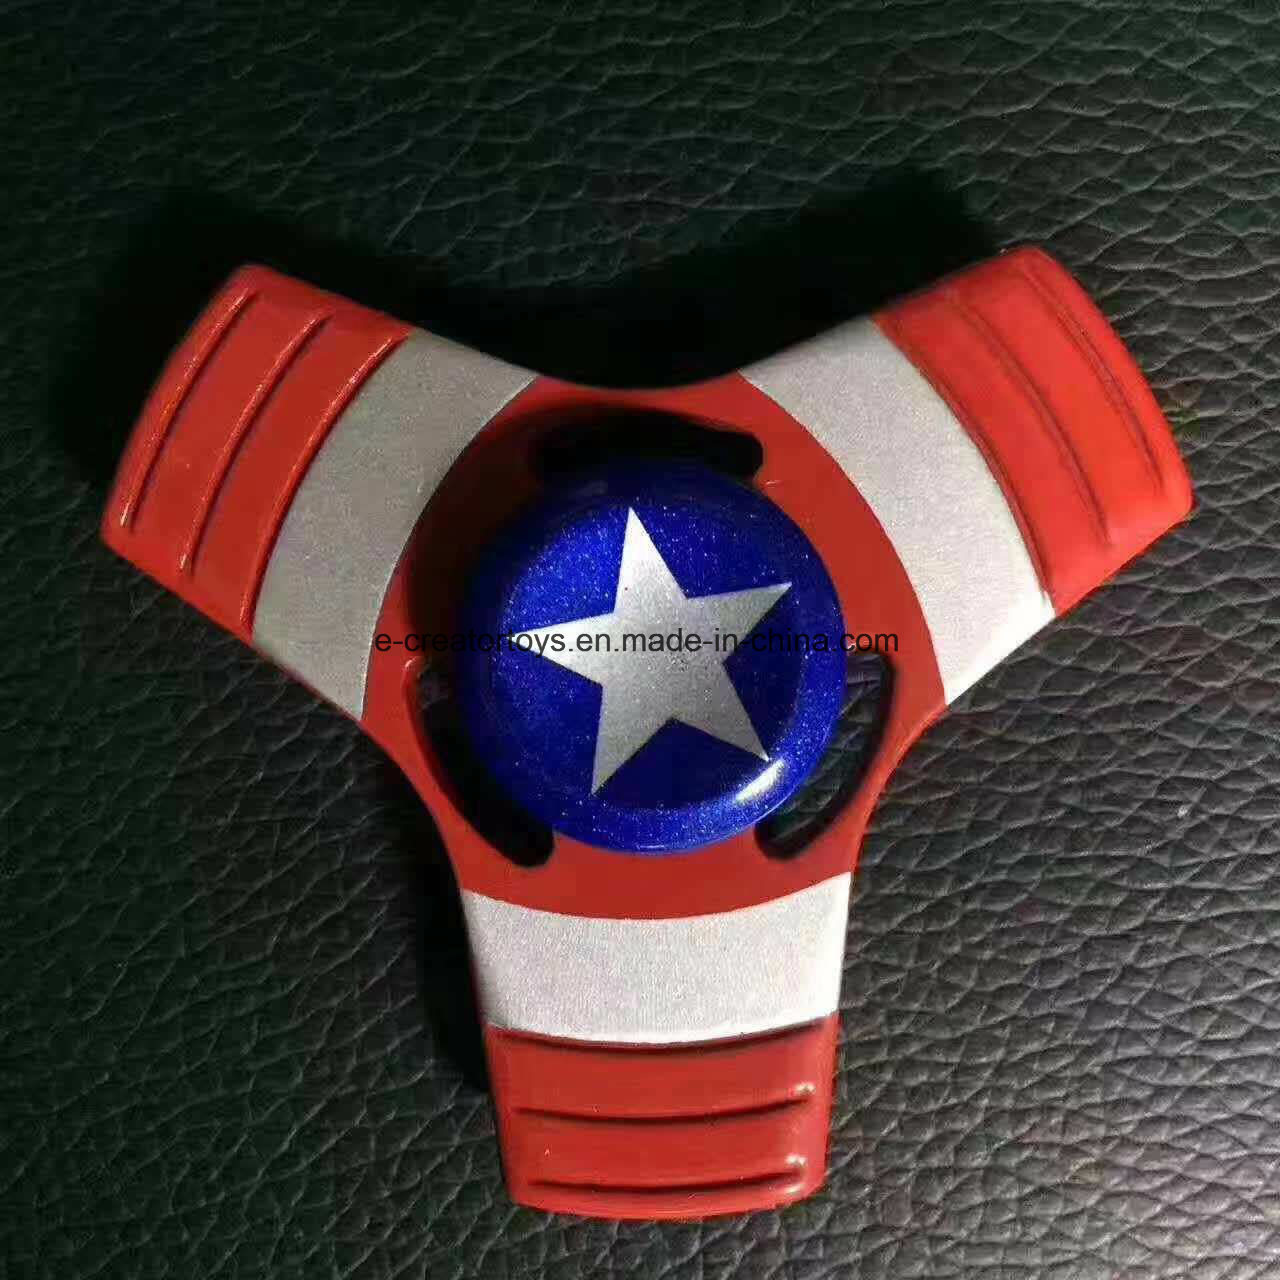 2017 Top Selling Fidget Spinner with Captain America